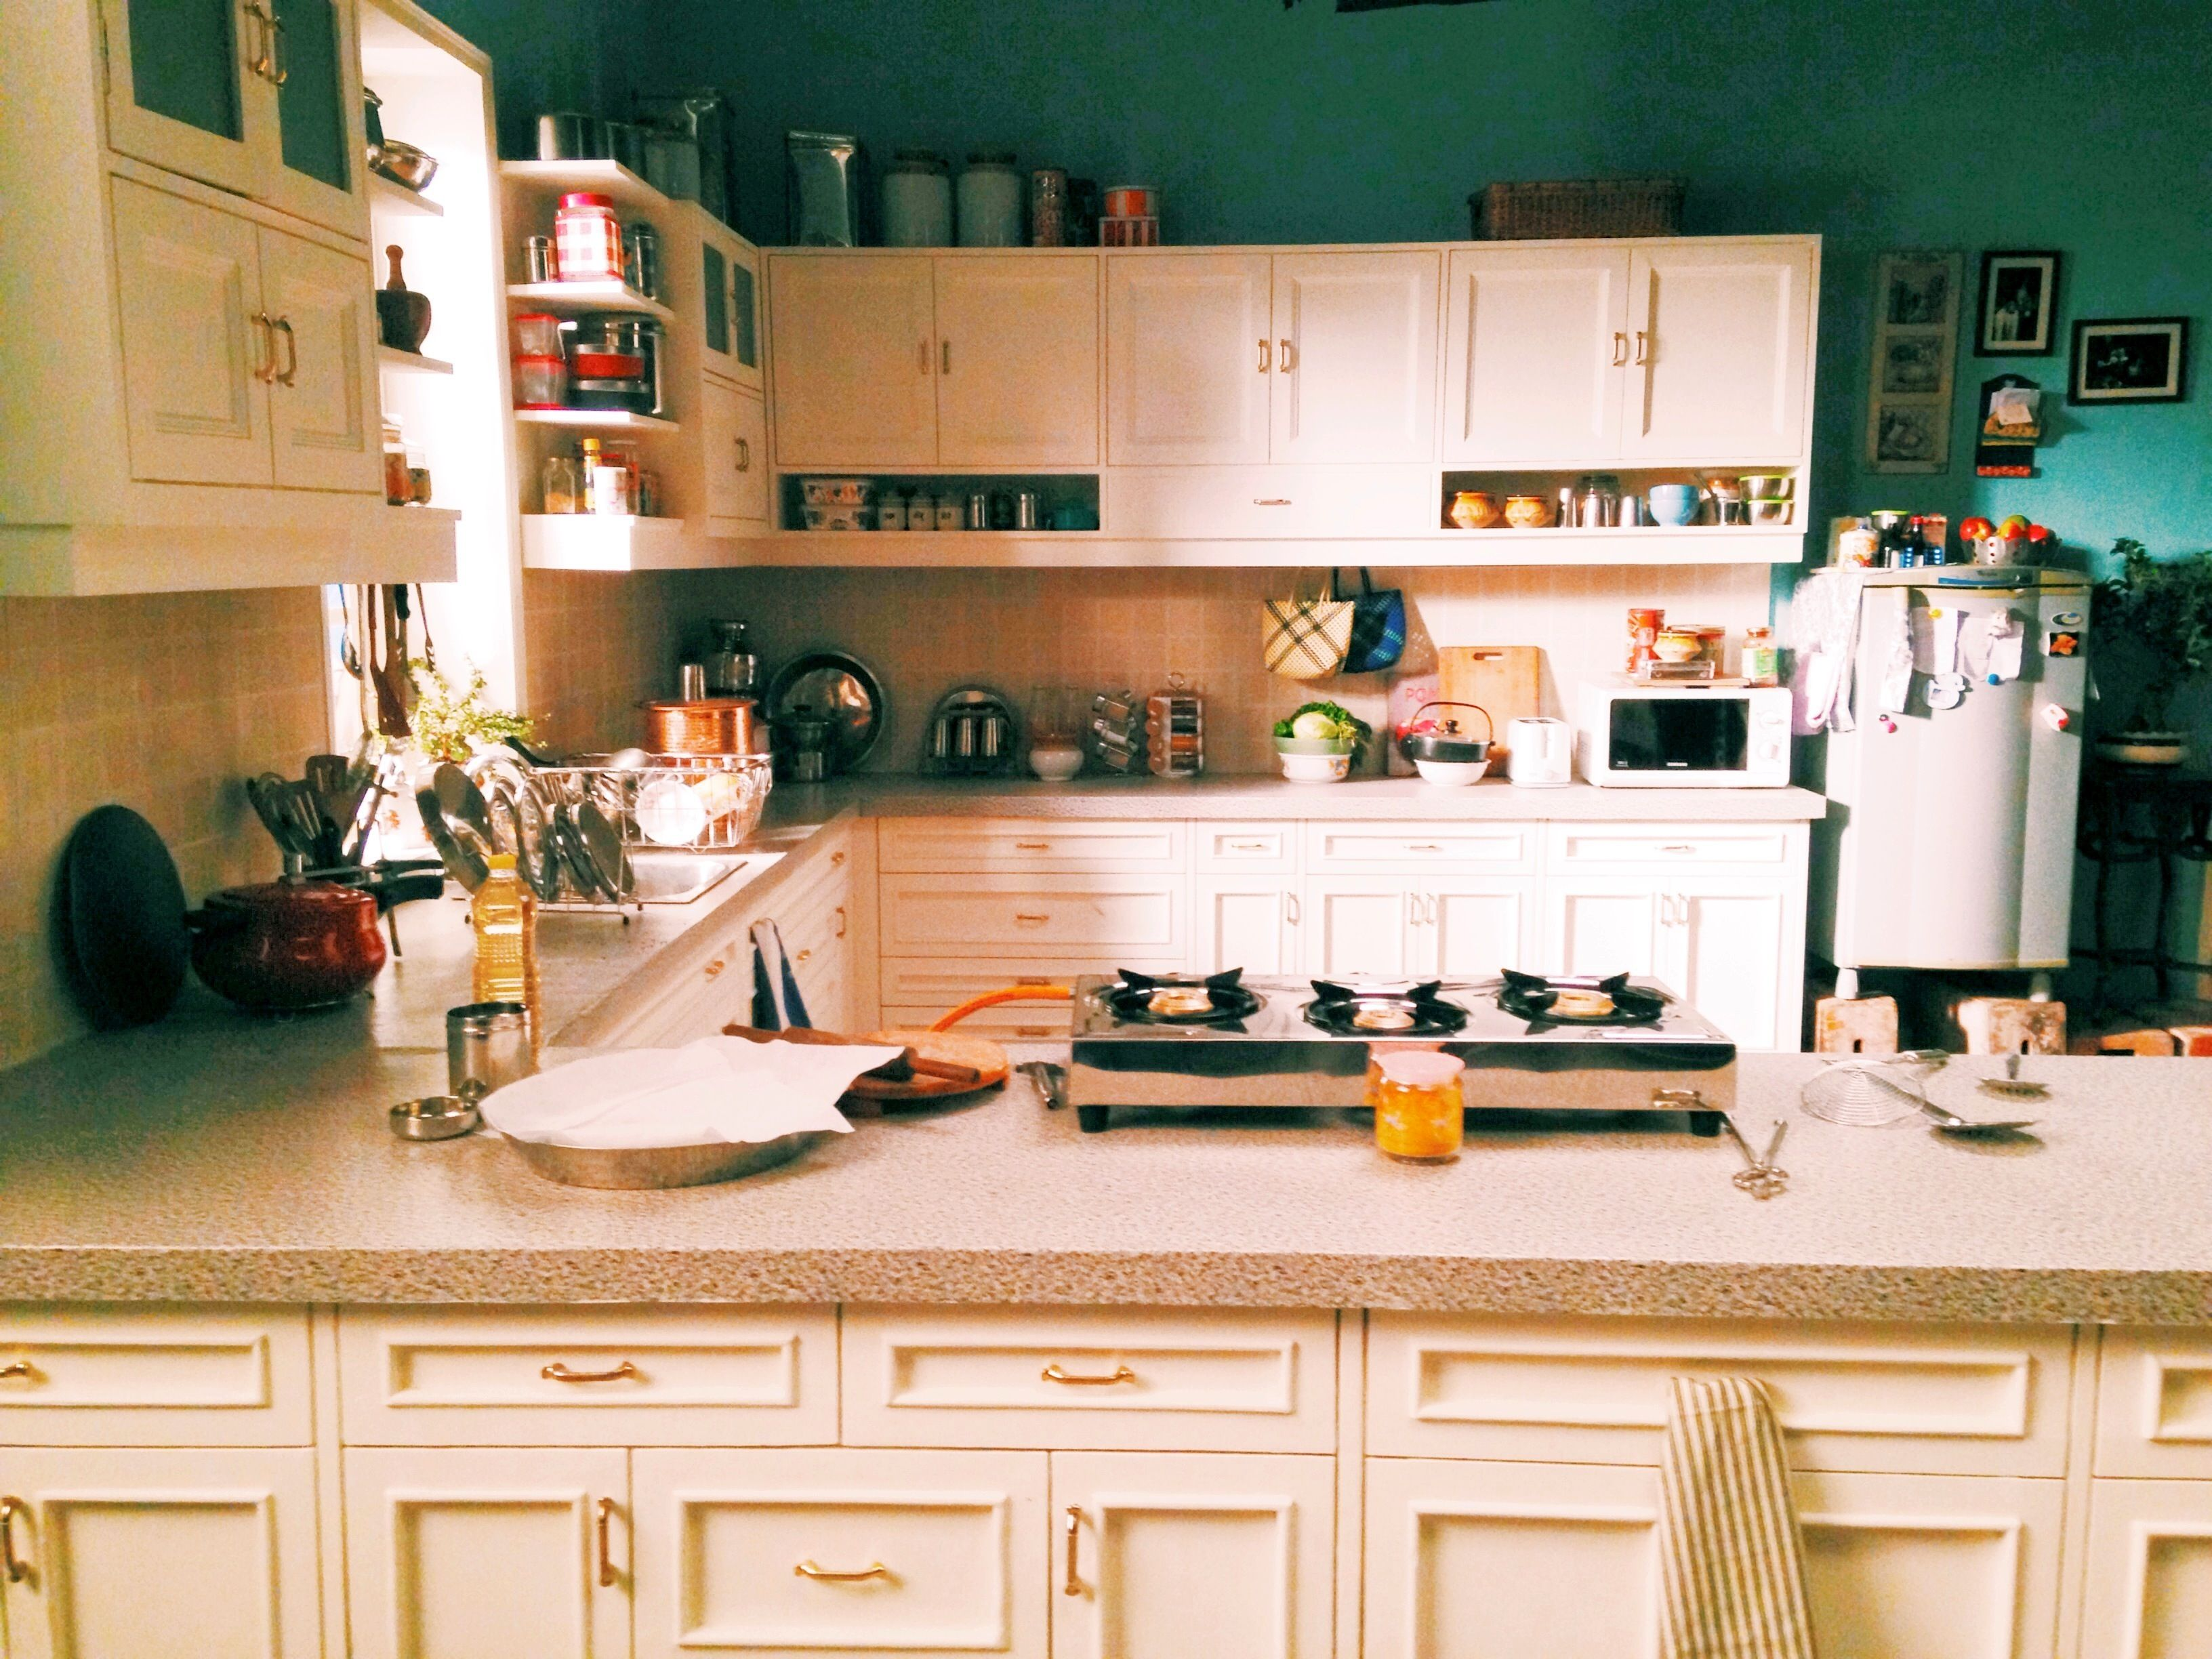 Indian middle class kitchen design - Middle Class Indian Kitchen Styled By Niyoti